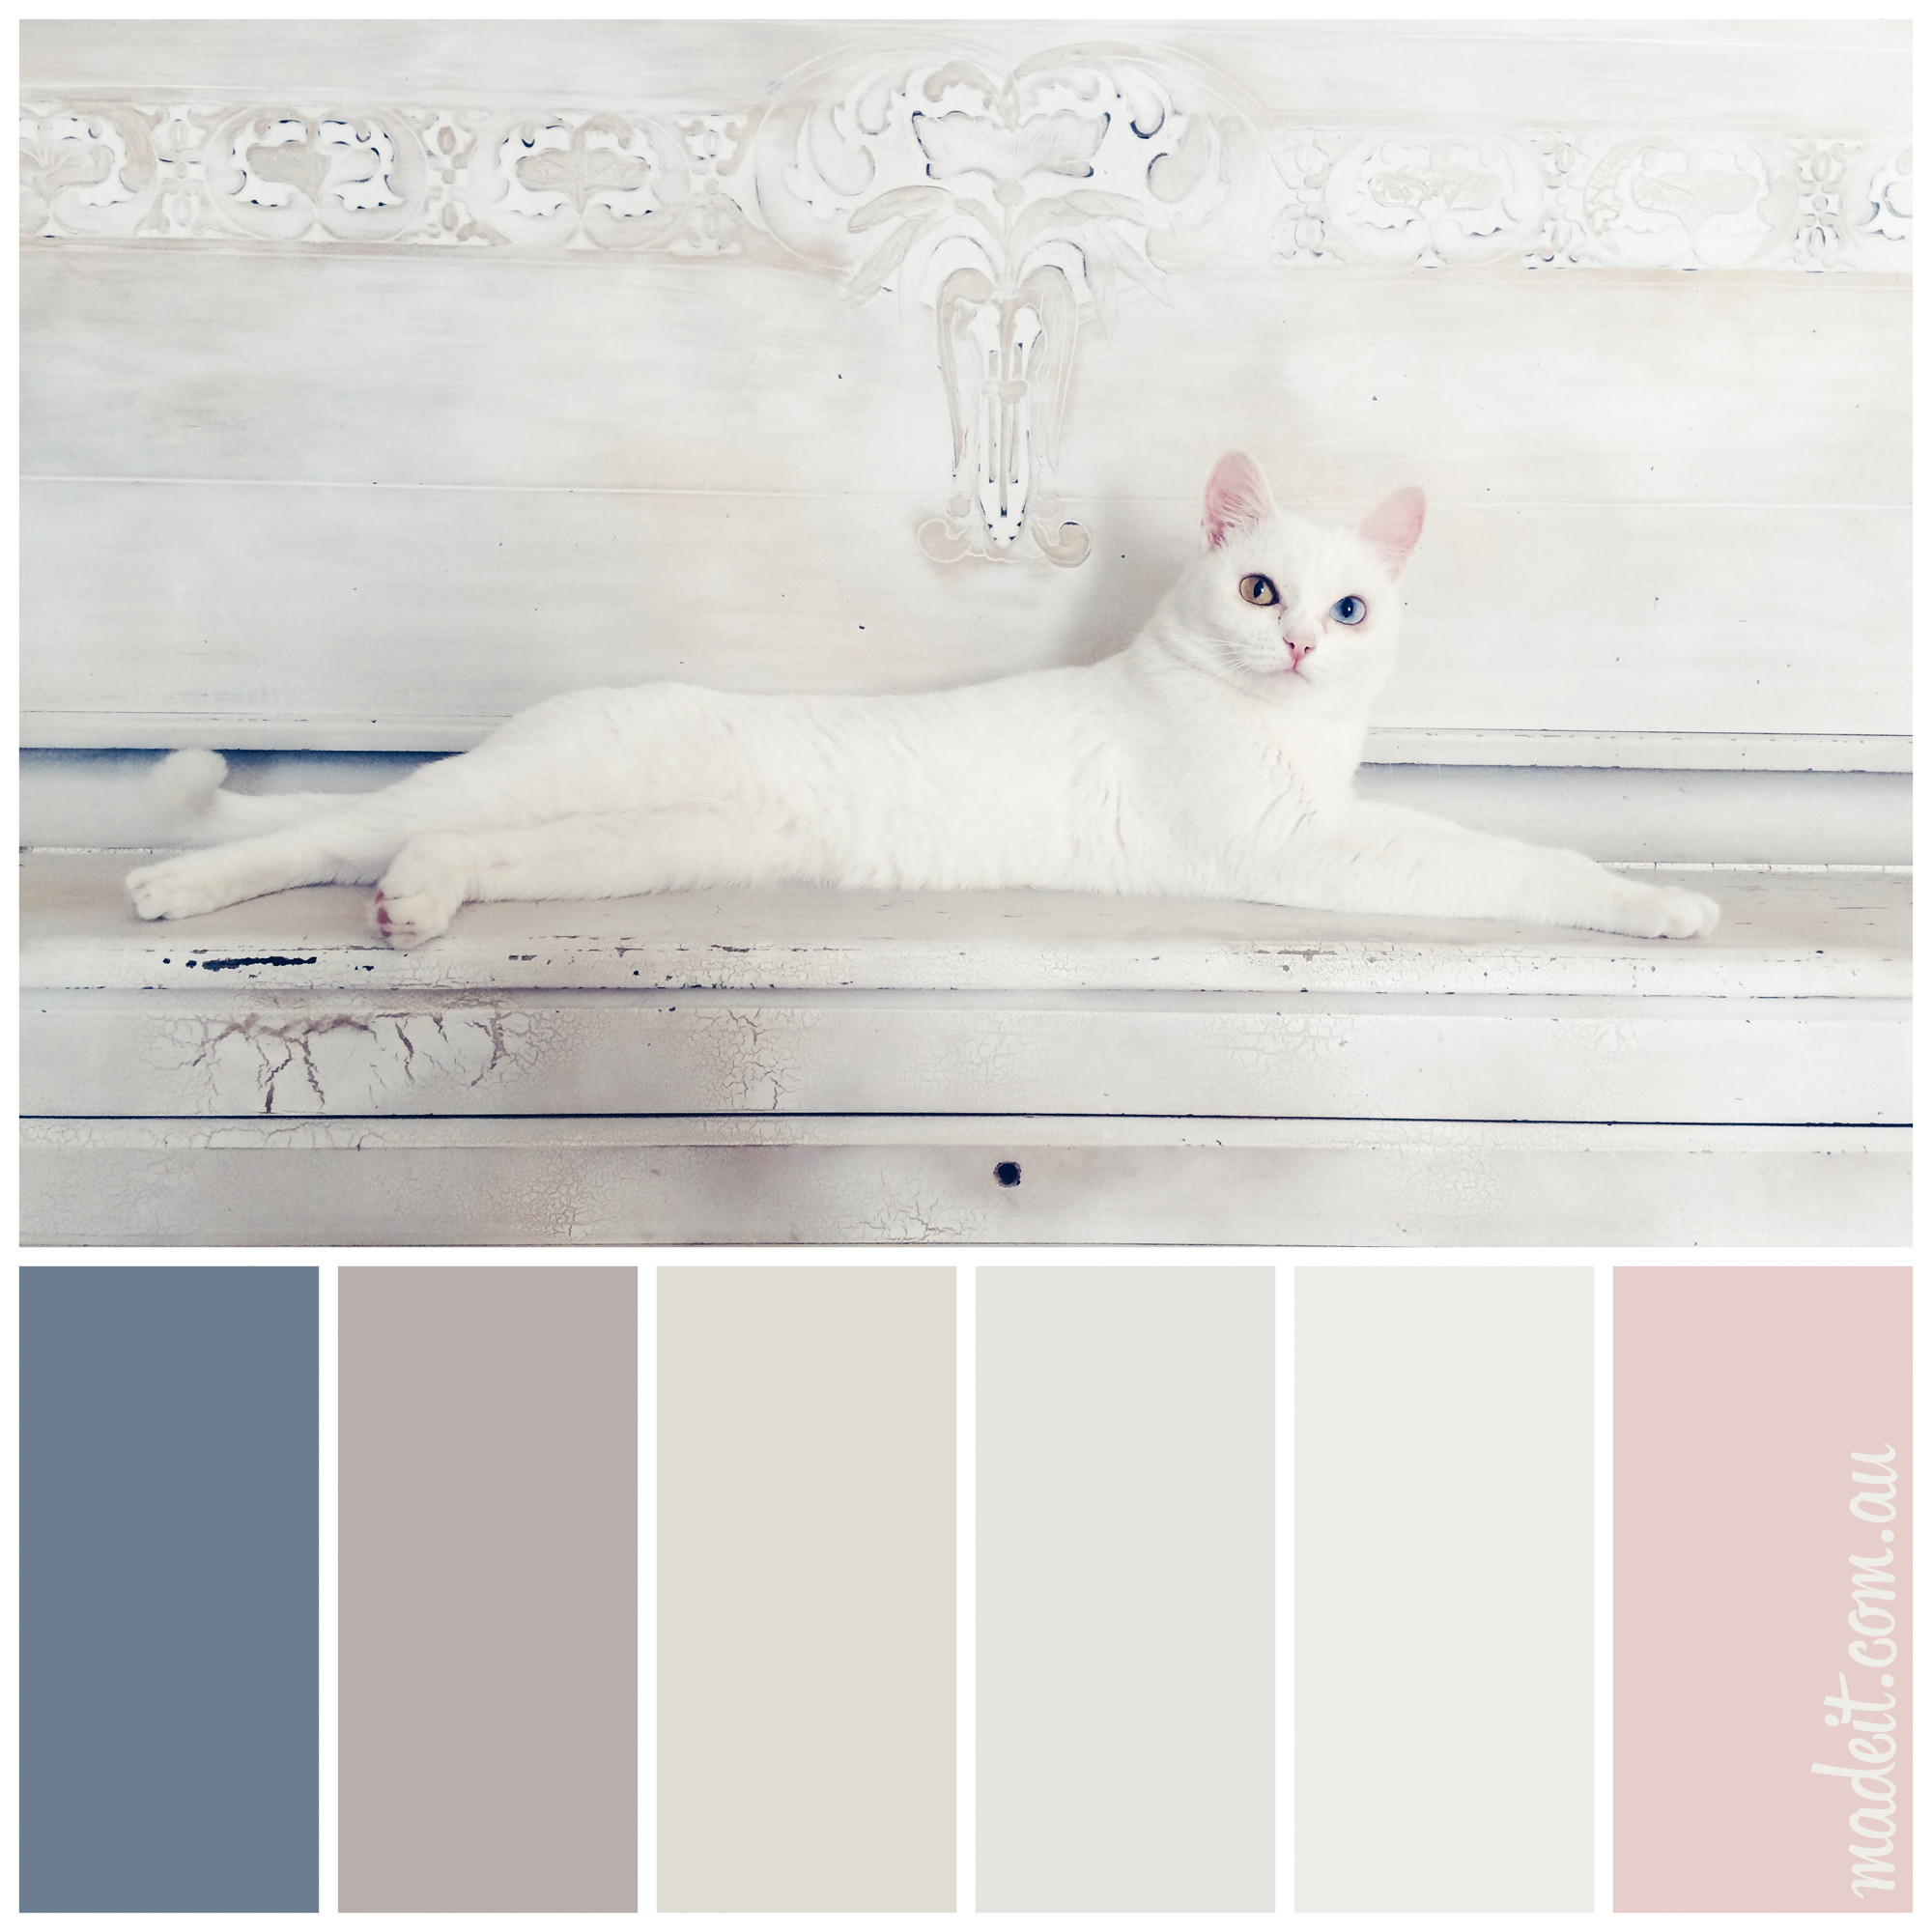 Feline colour inspiration: regal white cat with two-tone iris